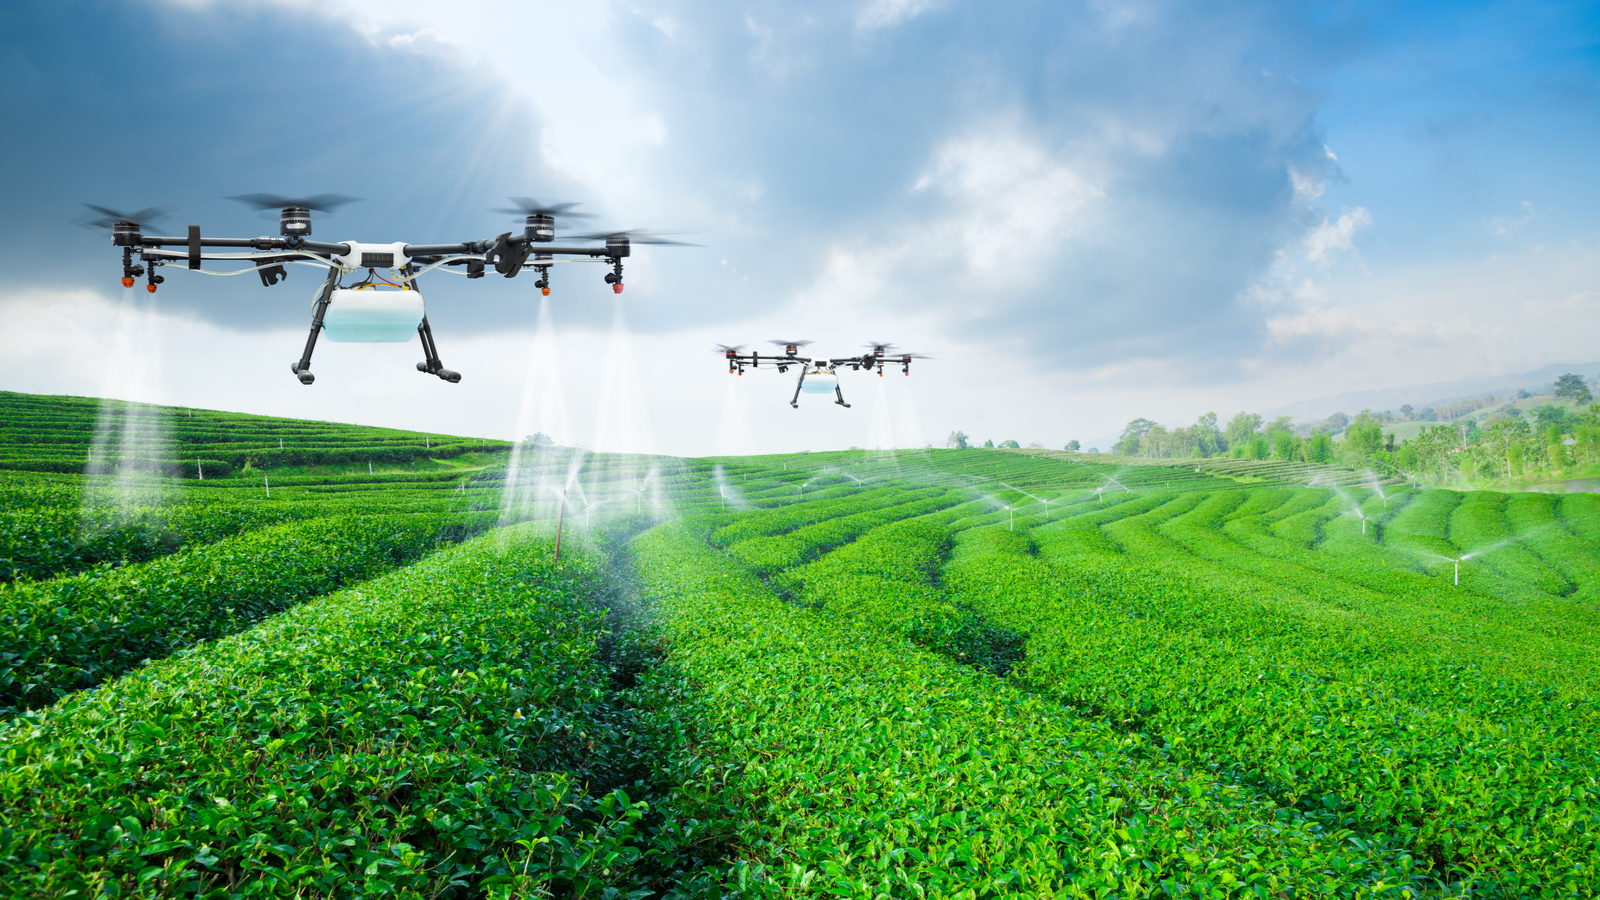 Agriculture drones flying and spraying crops over a field